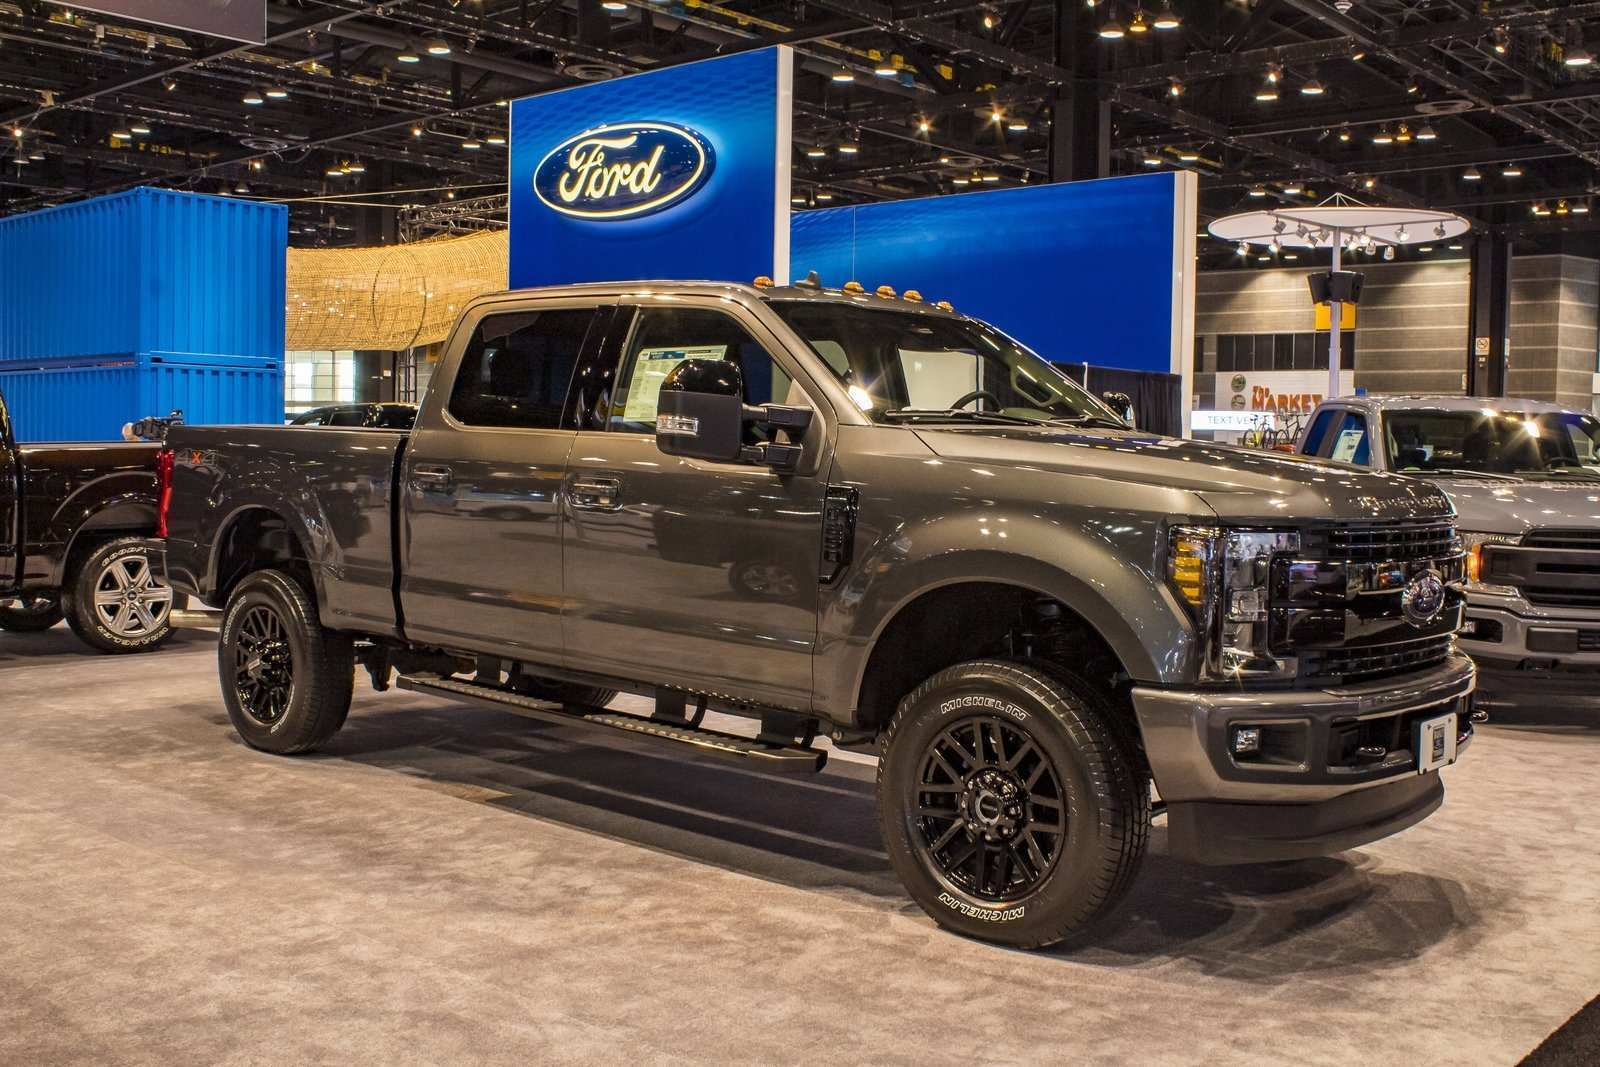 81 All New 2020 Ford F250 Configurations